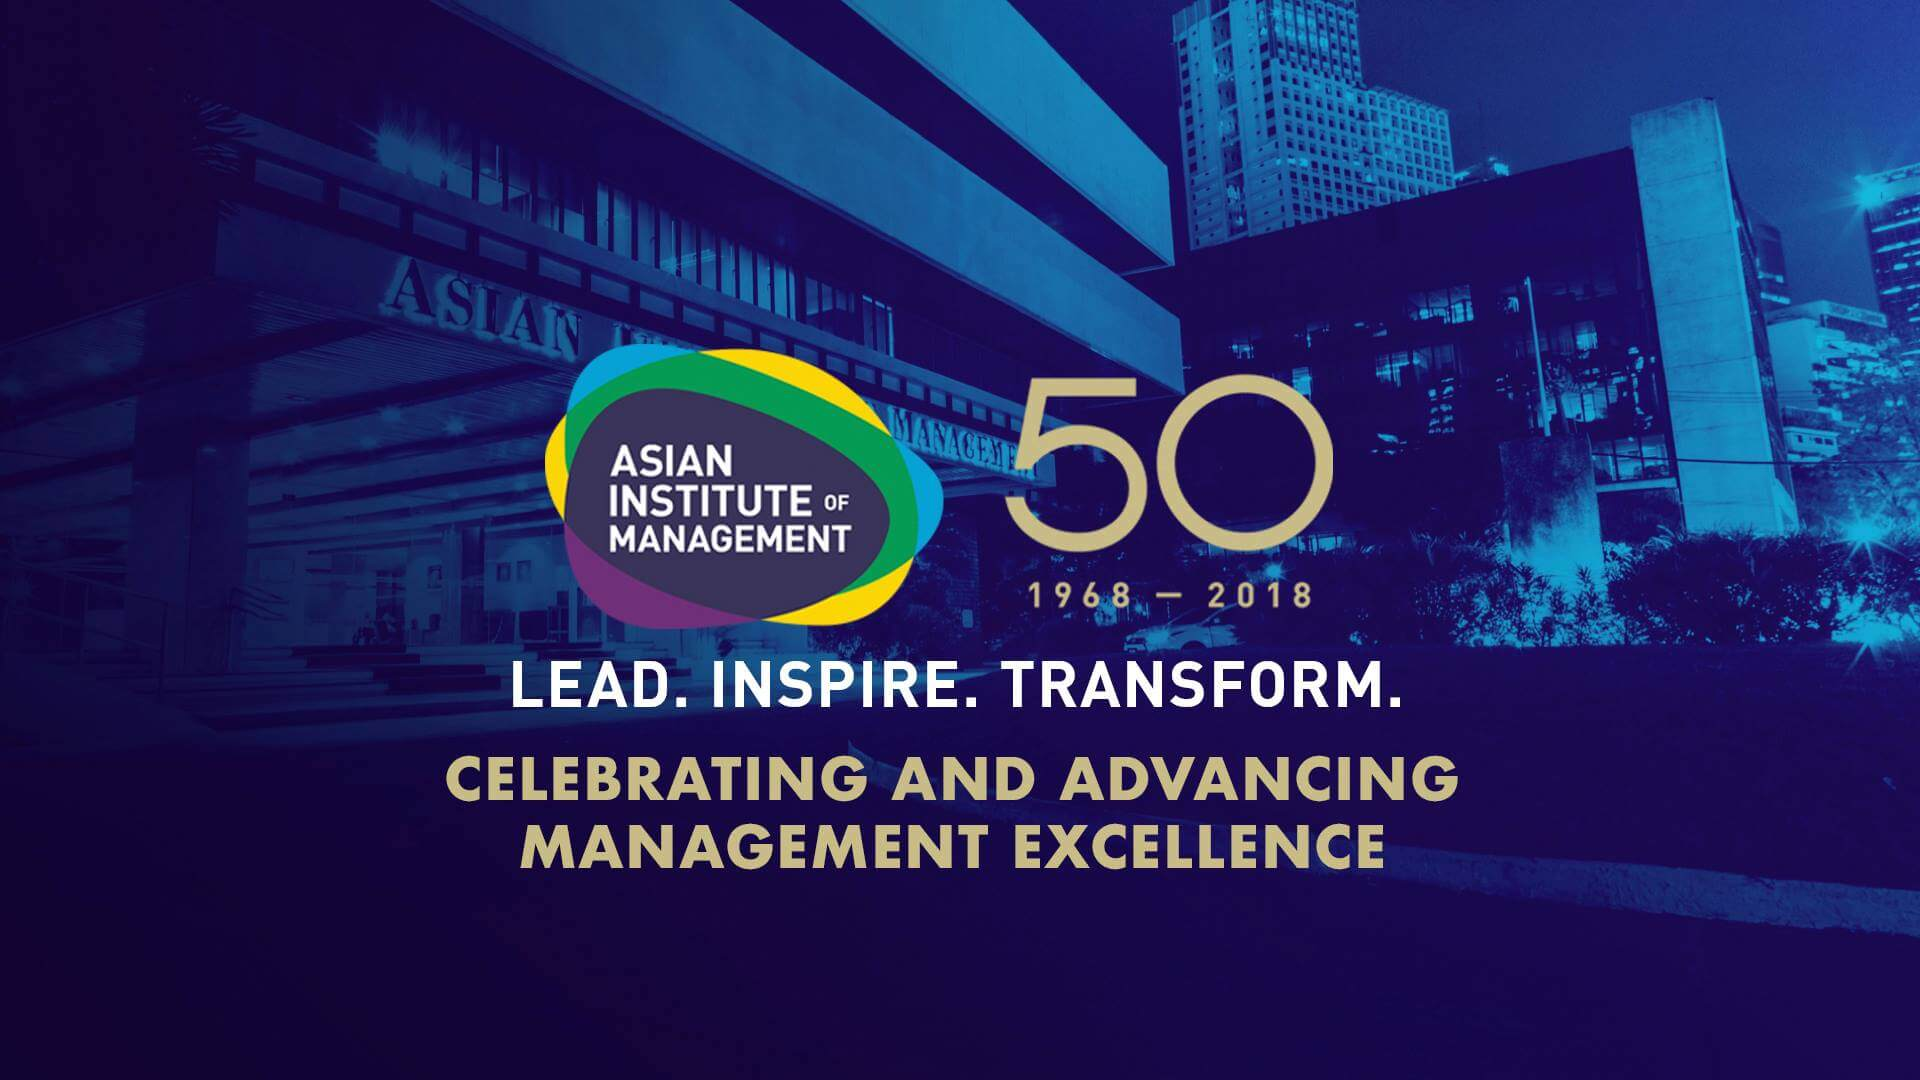 Asian Institute of Management Celebrating 50 Years of Excellence